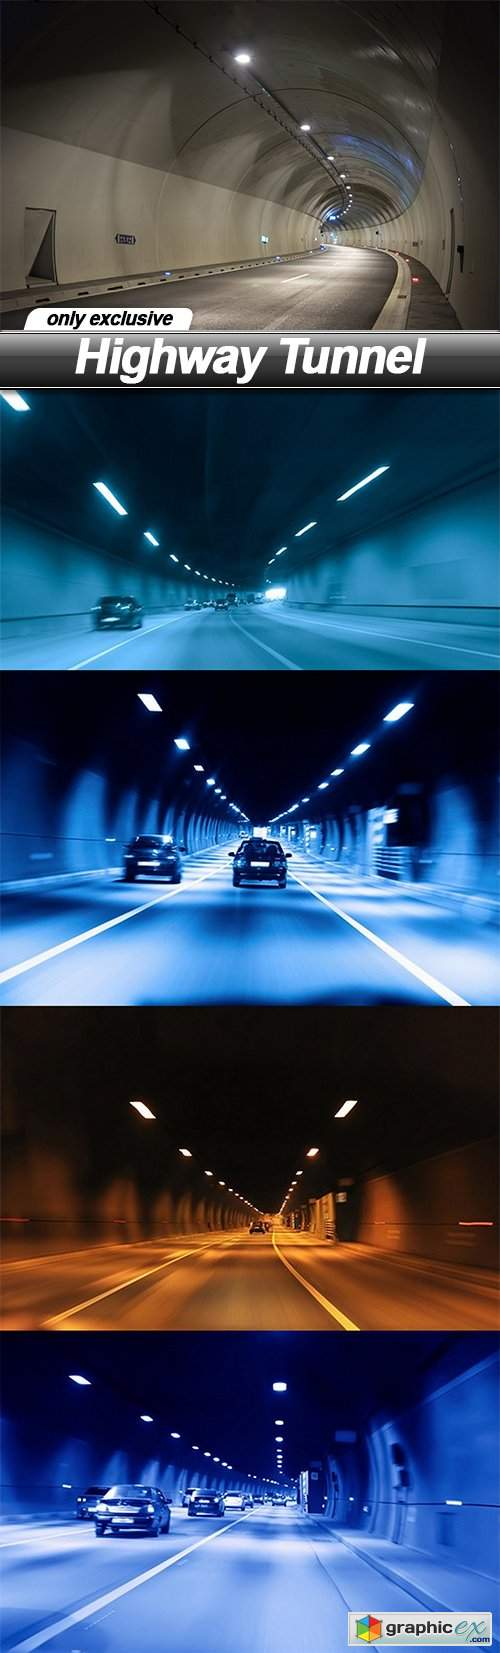 Highway Tunnel - 5 UHQ JPEG